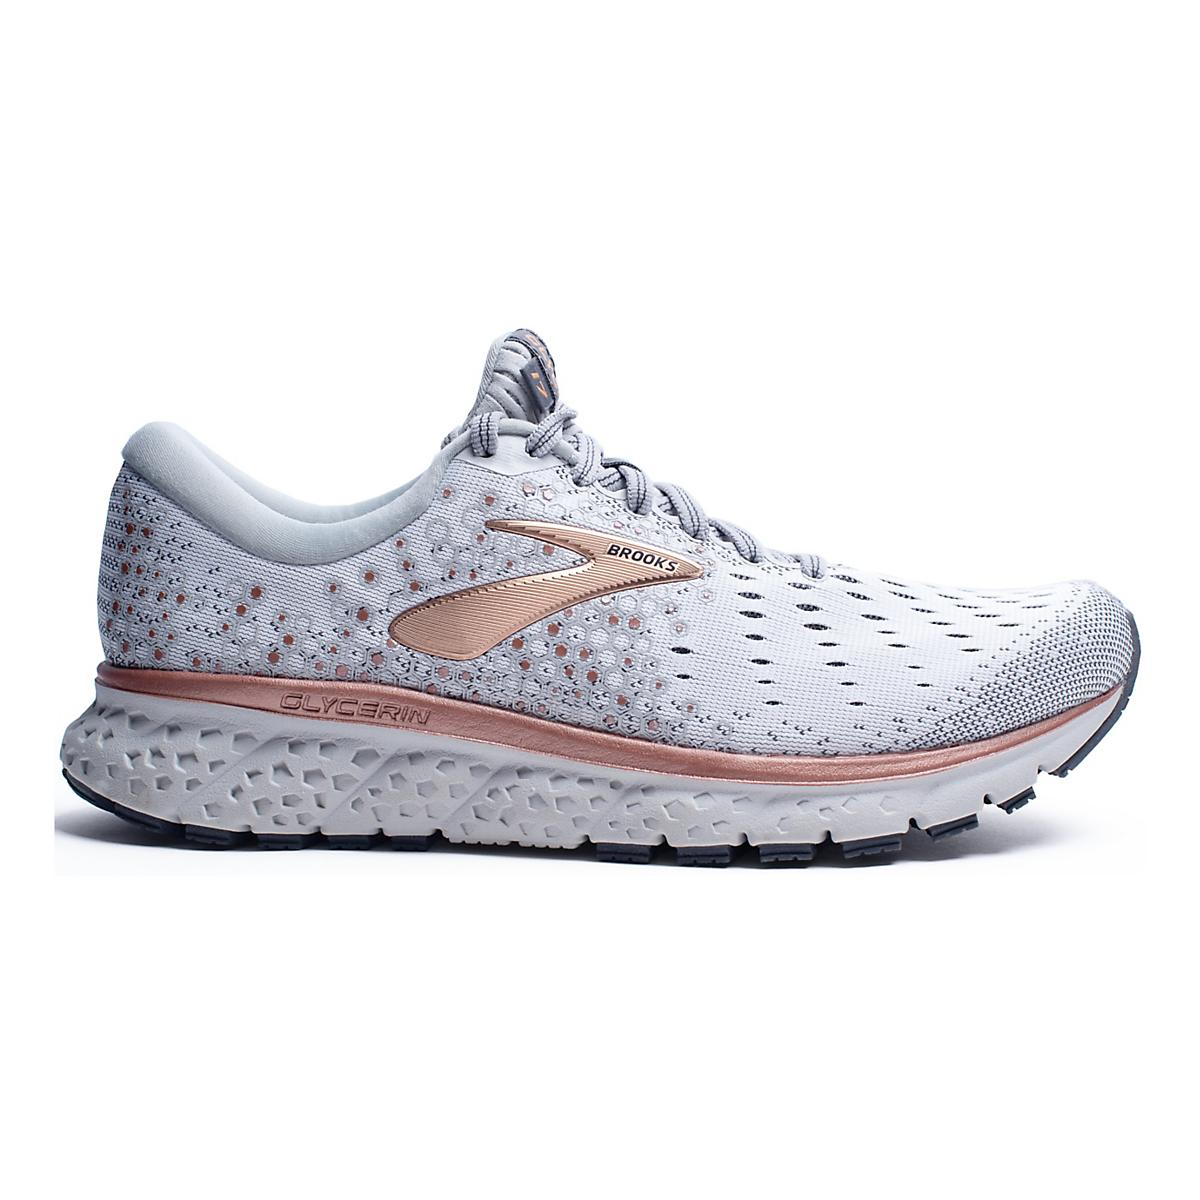 women's brooks glycerin shoes